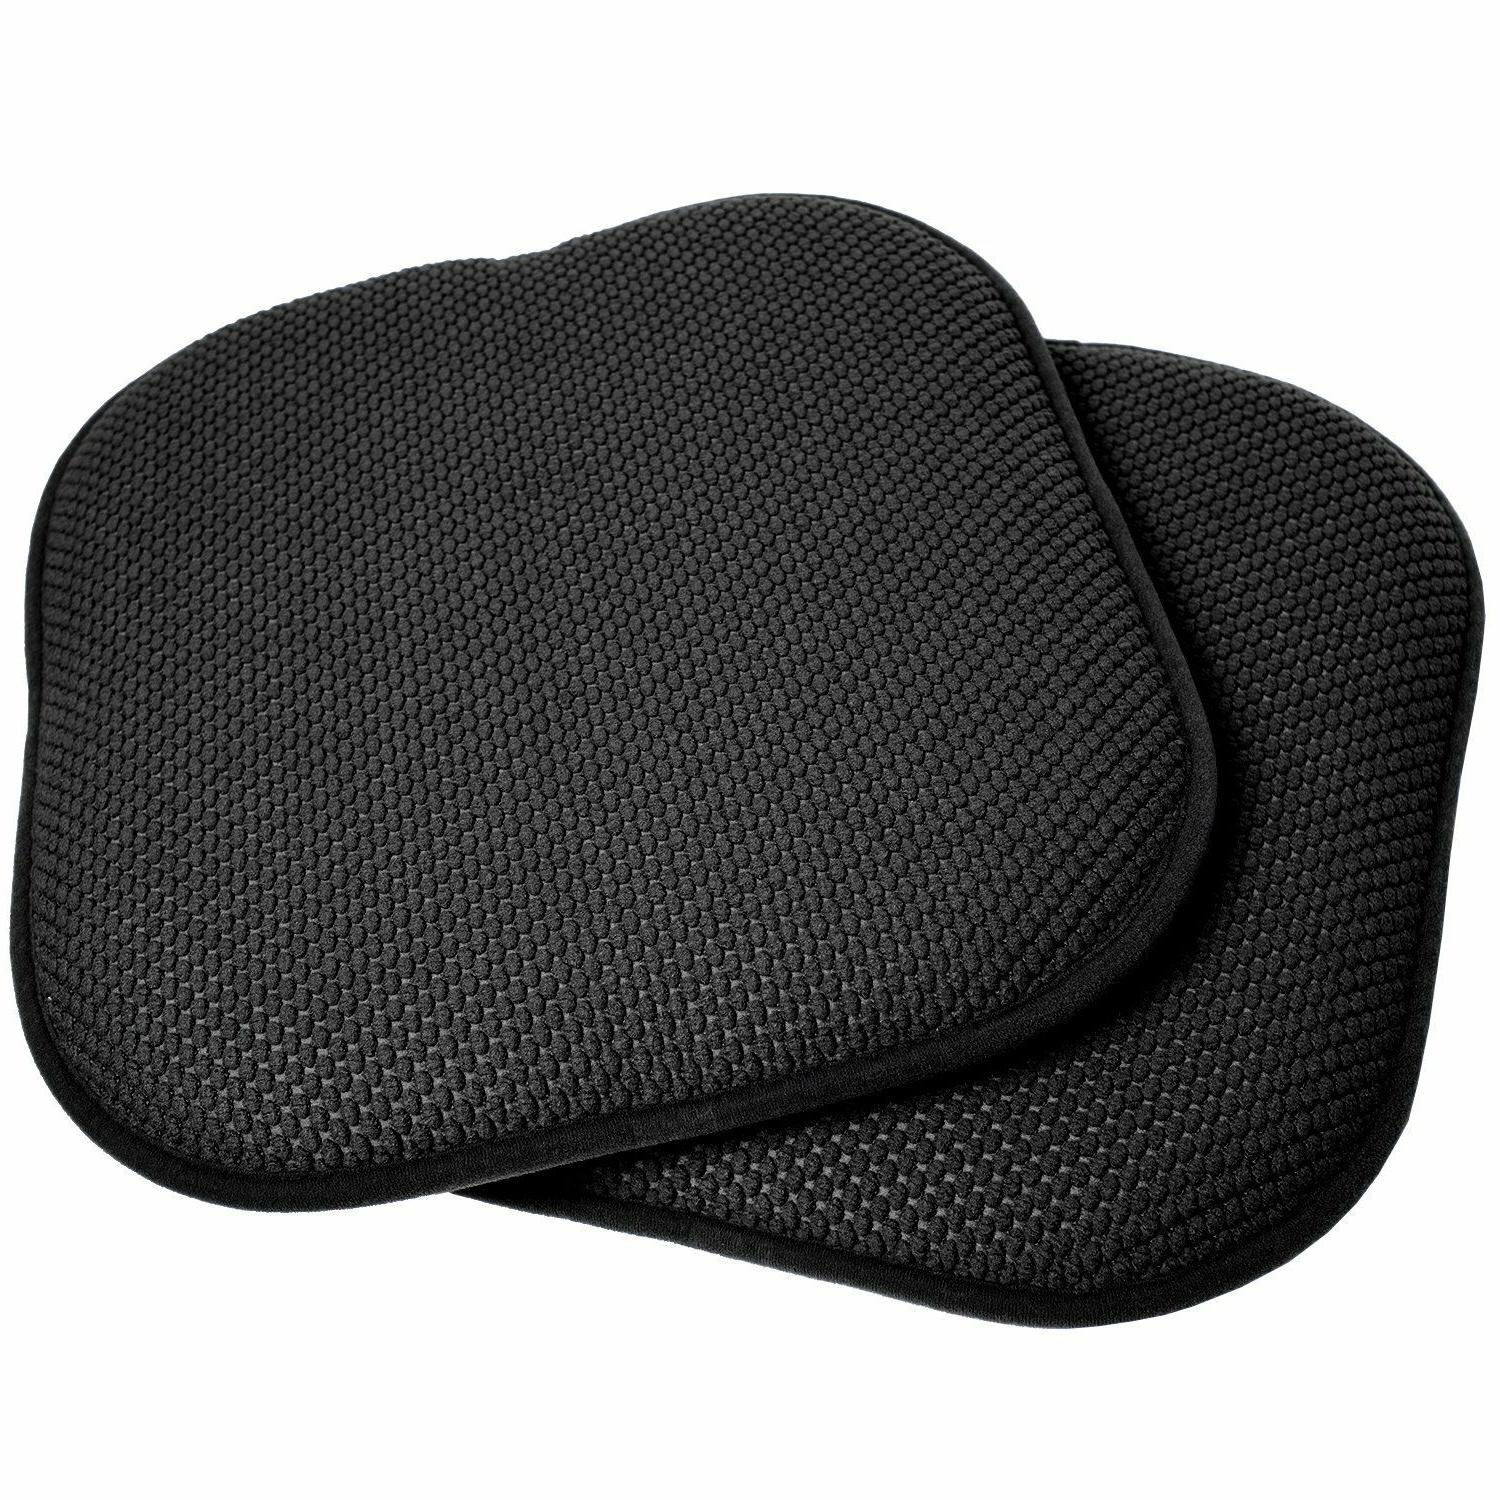 Memory Foam Chair Pads 4 Non Slip Back Chair/Seat Cushion Pa